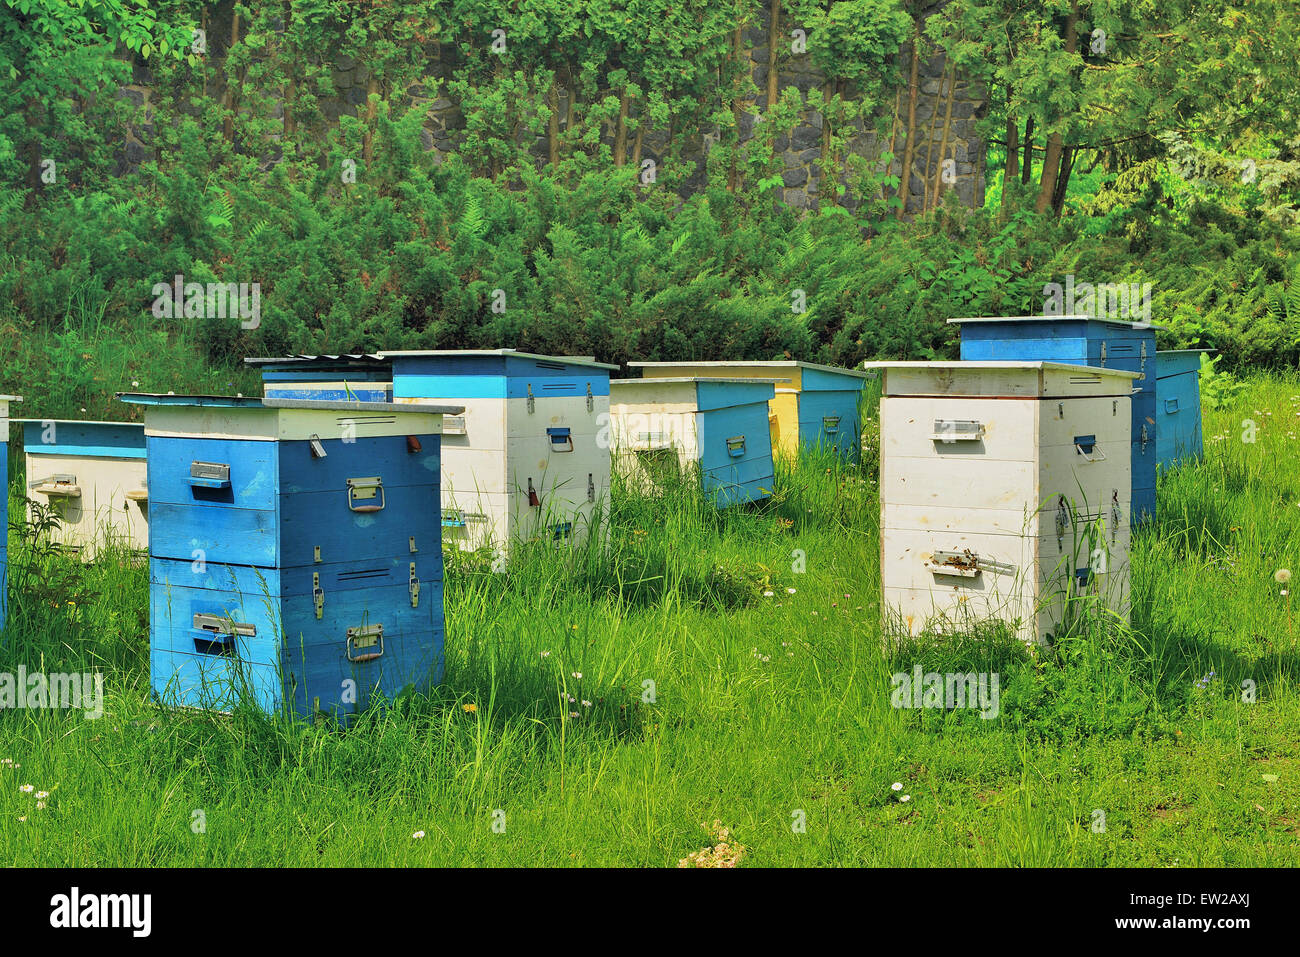 Apiary in the wood - Stock Image